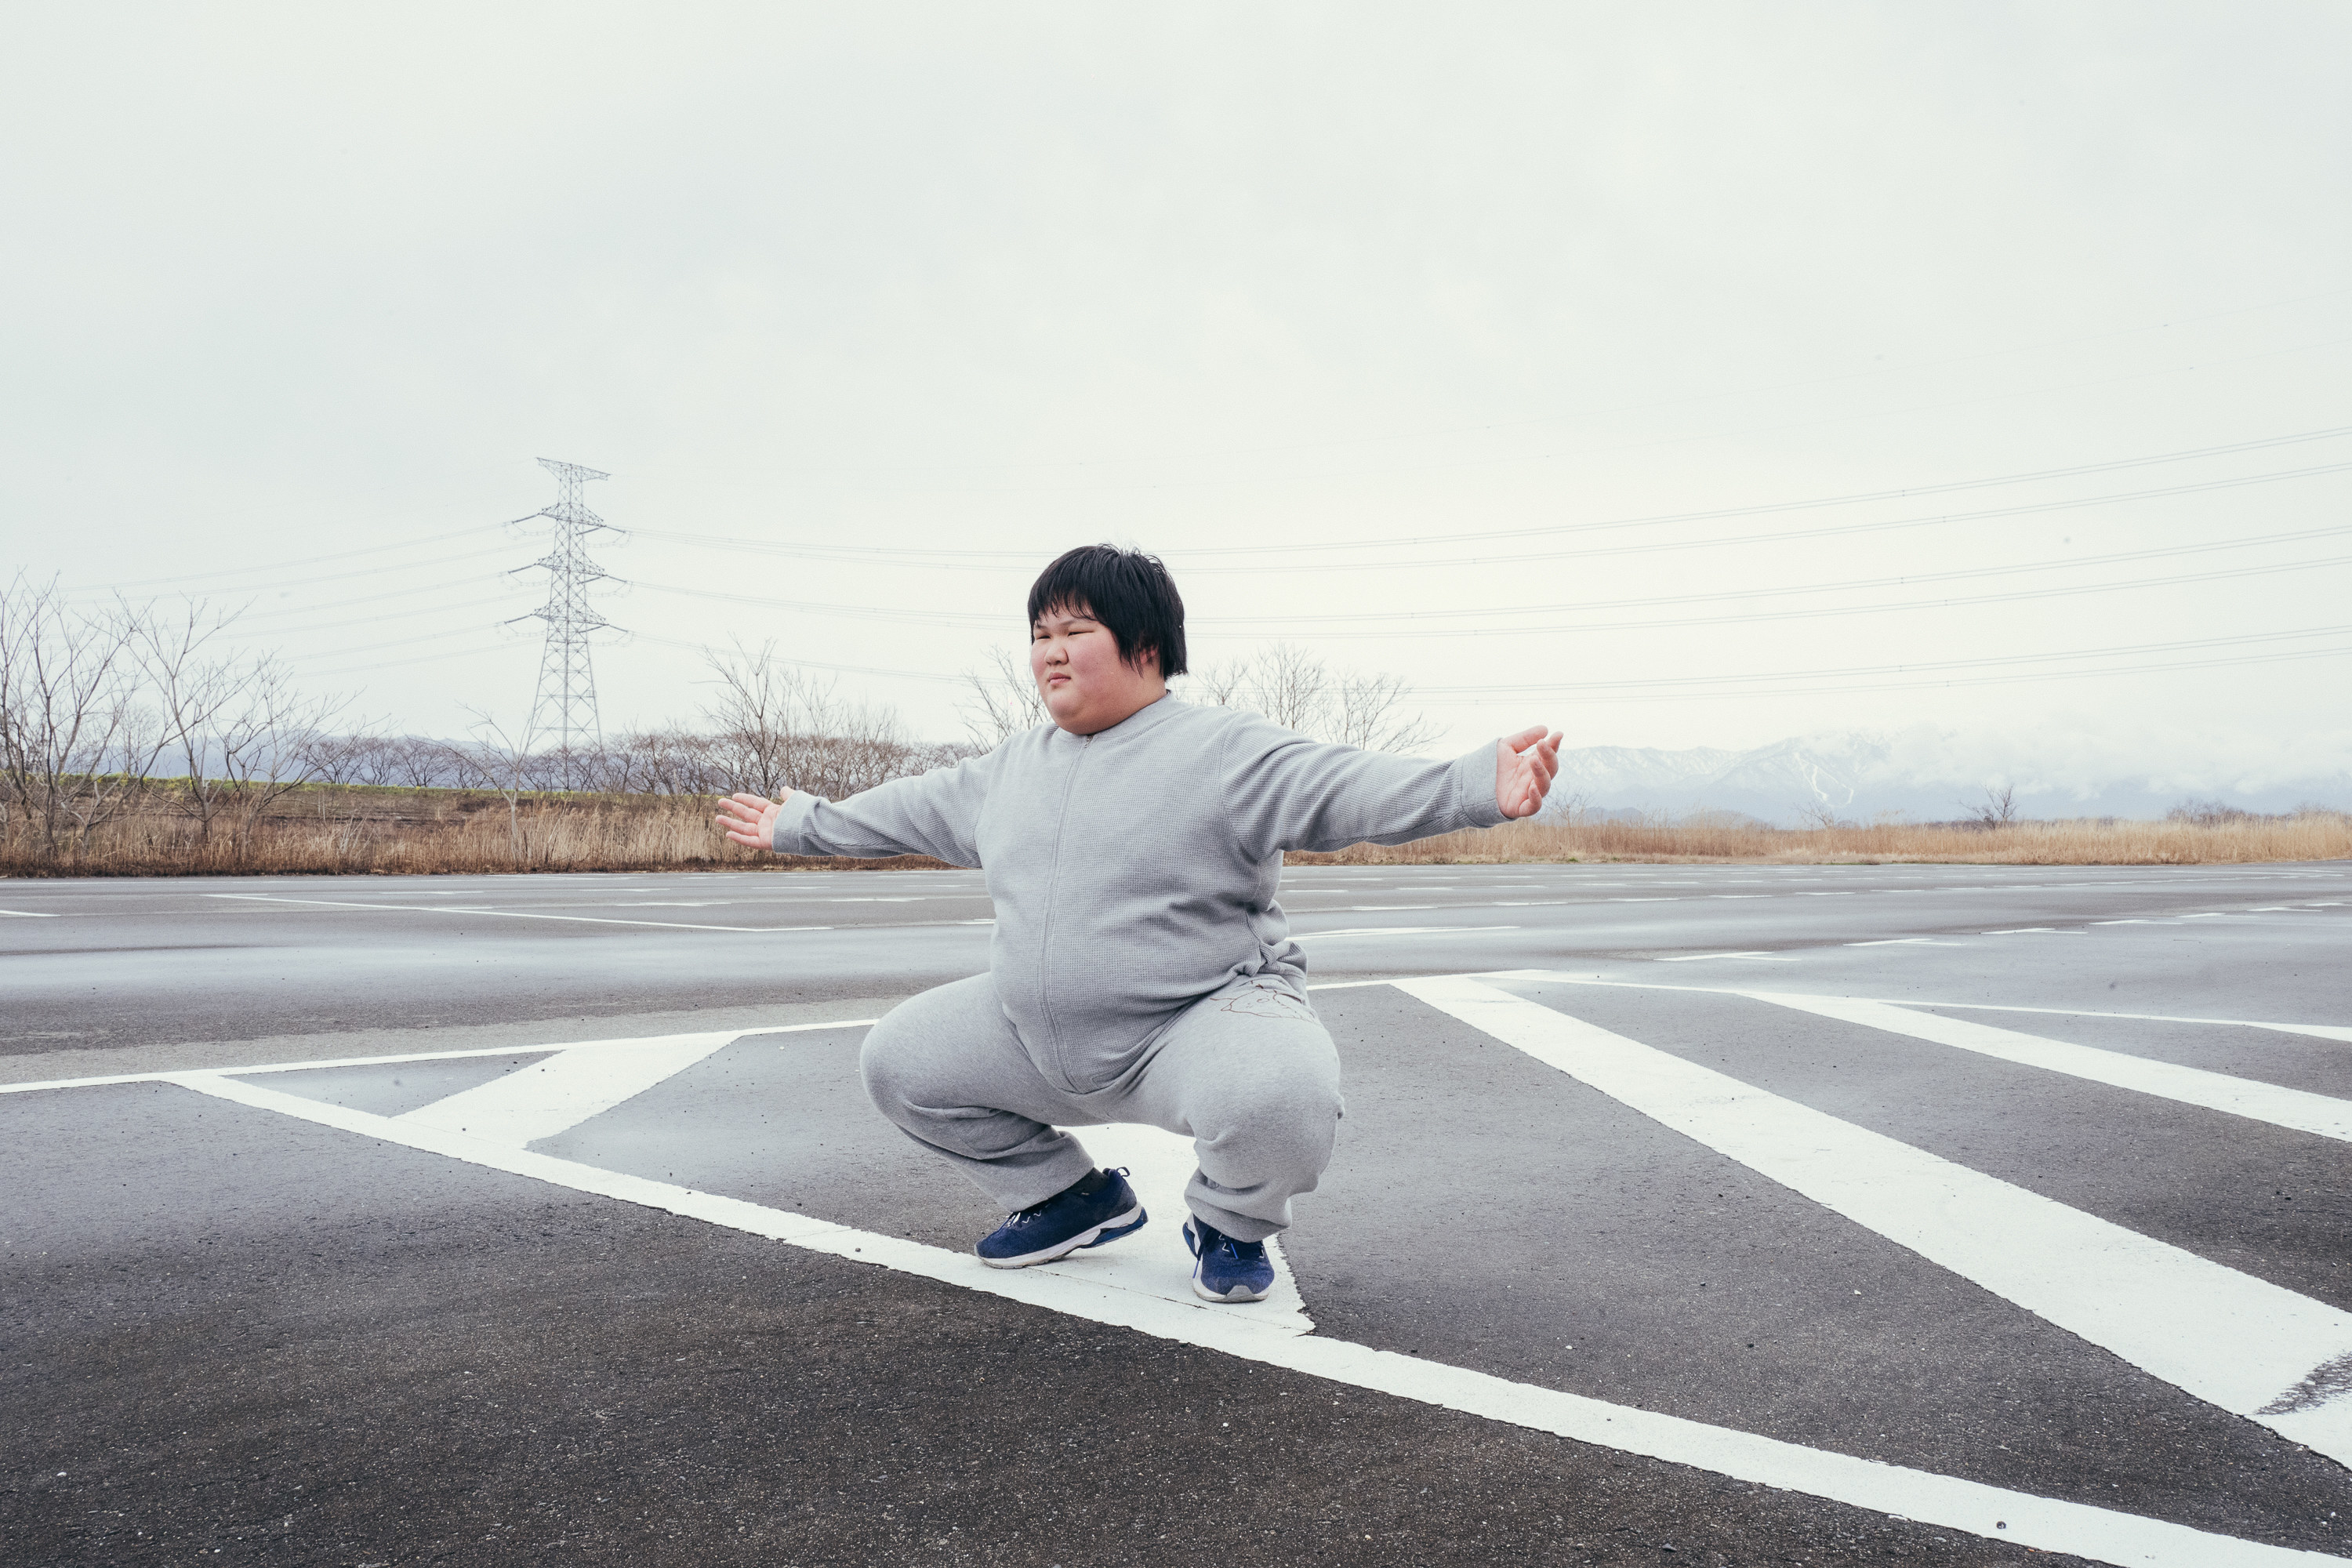 A young sumo wrestler crouches in a parking lot